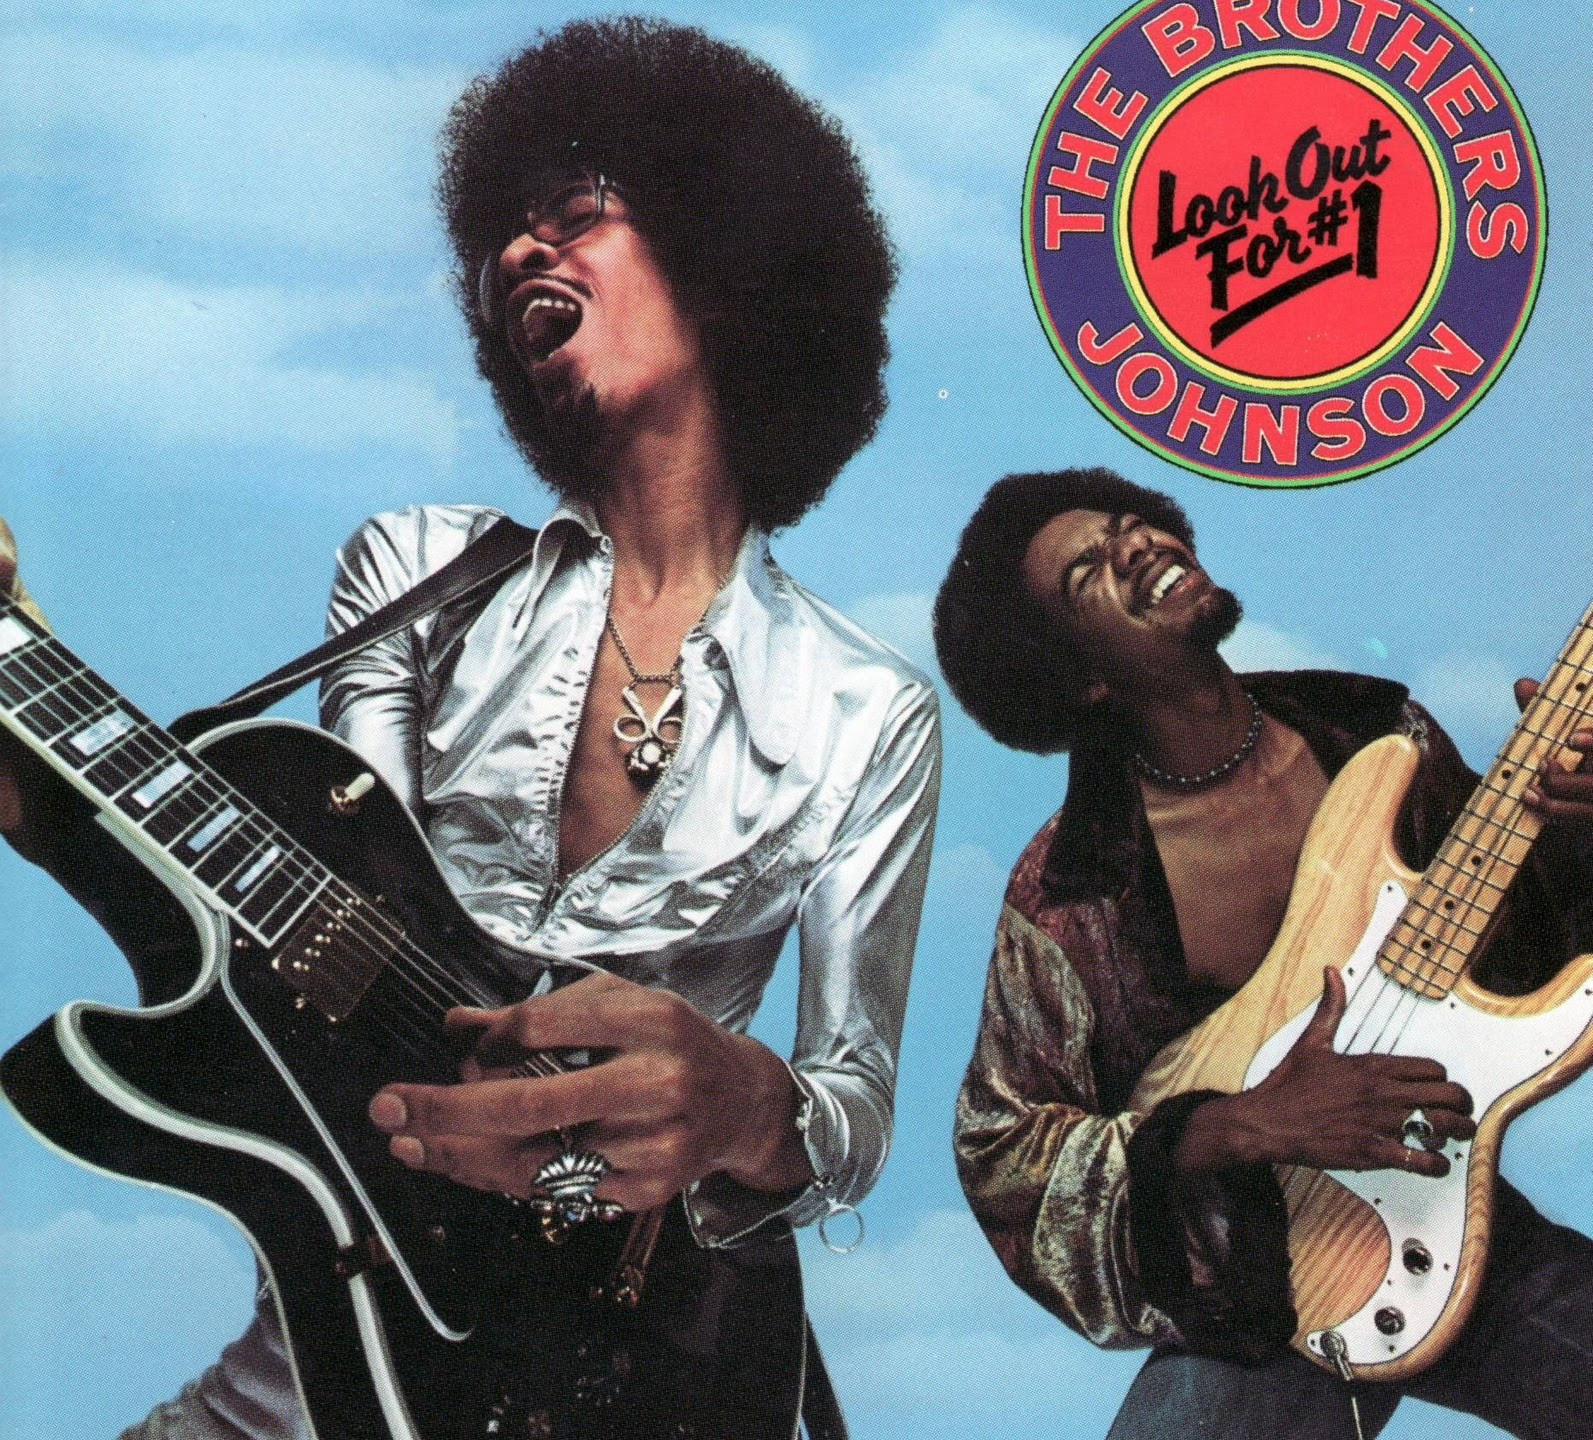 The Brothers Johnson - Look Out for #1 (A&M, 1976). Photography by Elliot Gilbert.